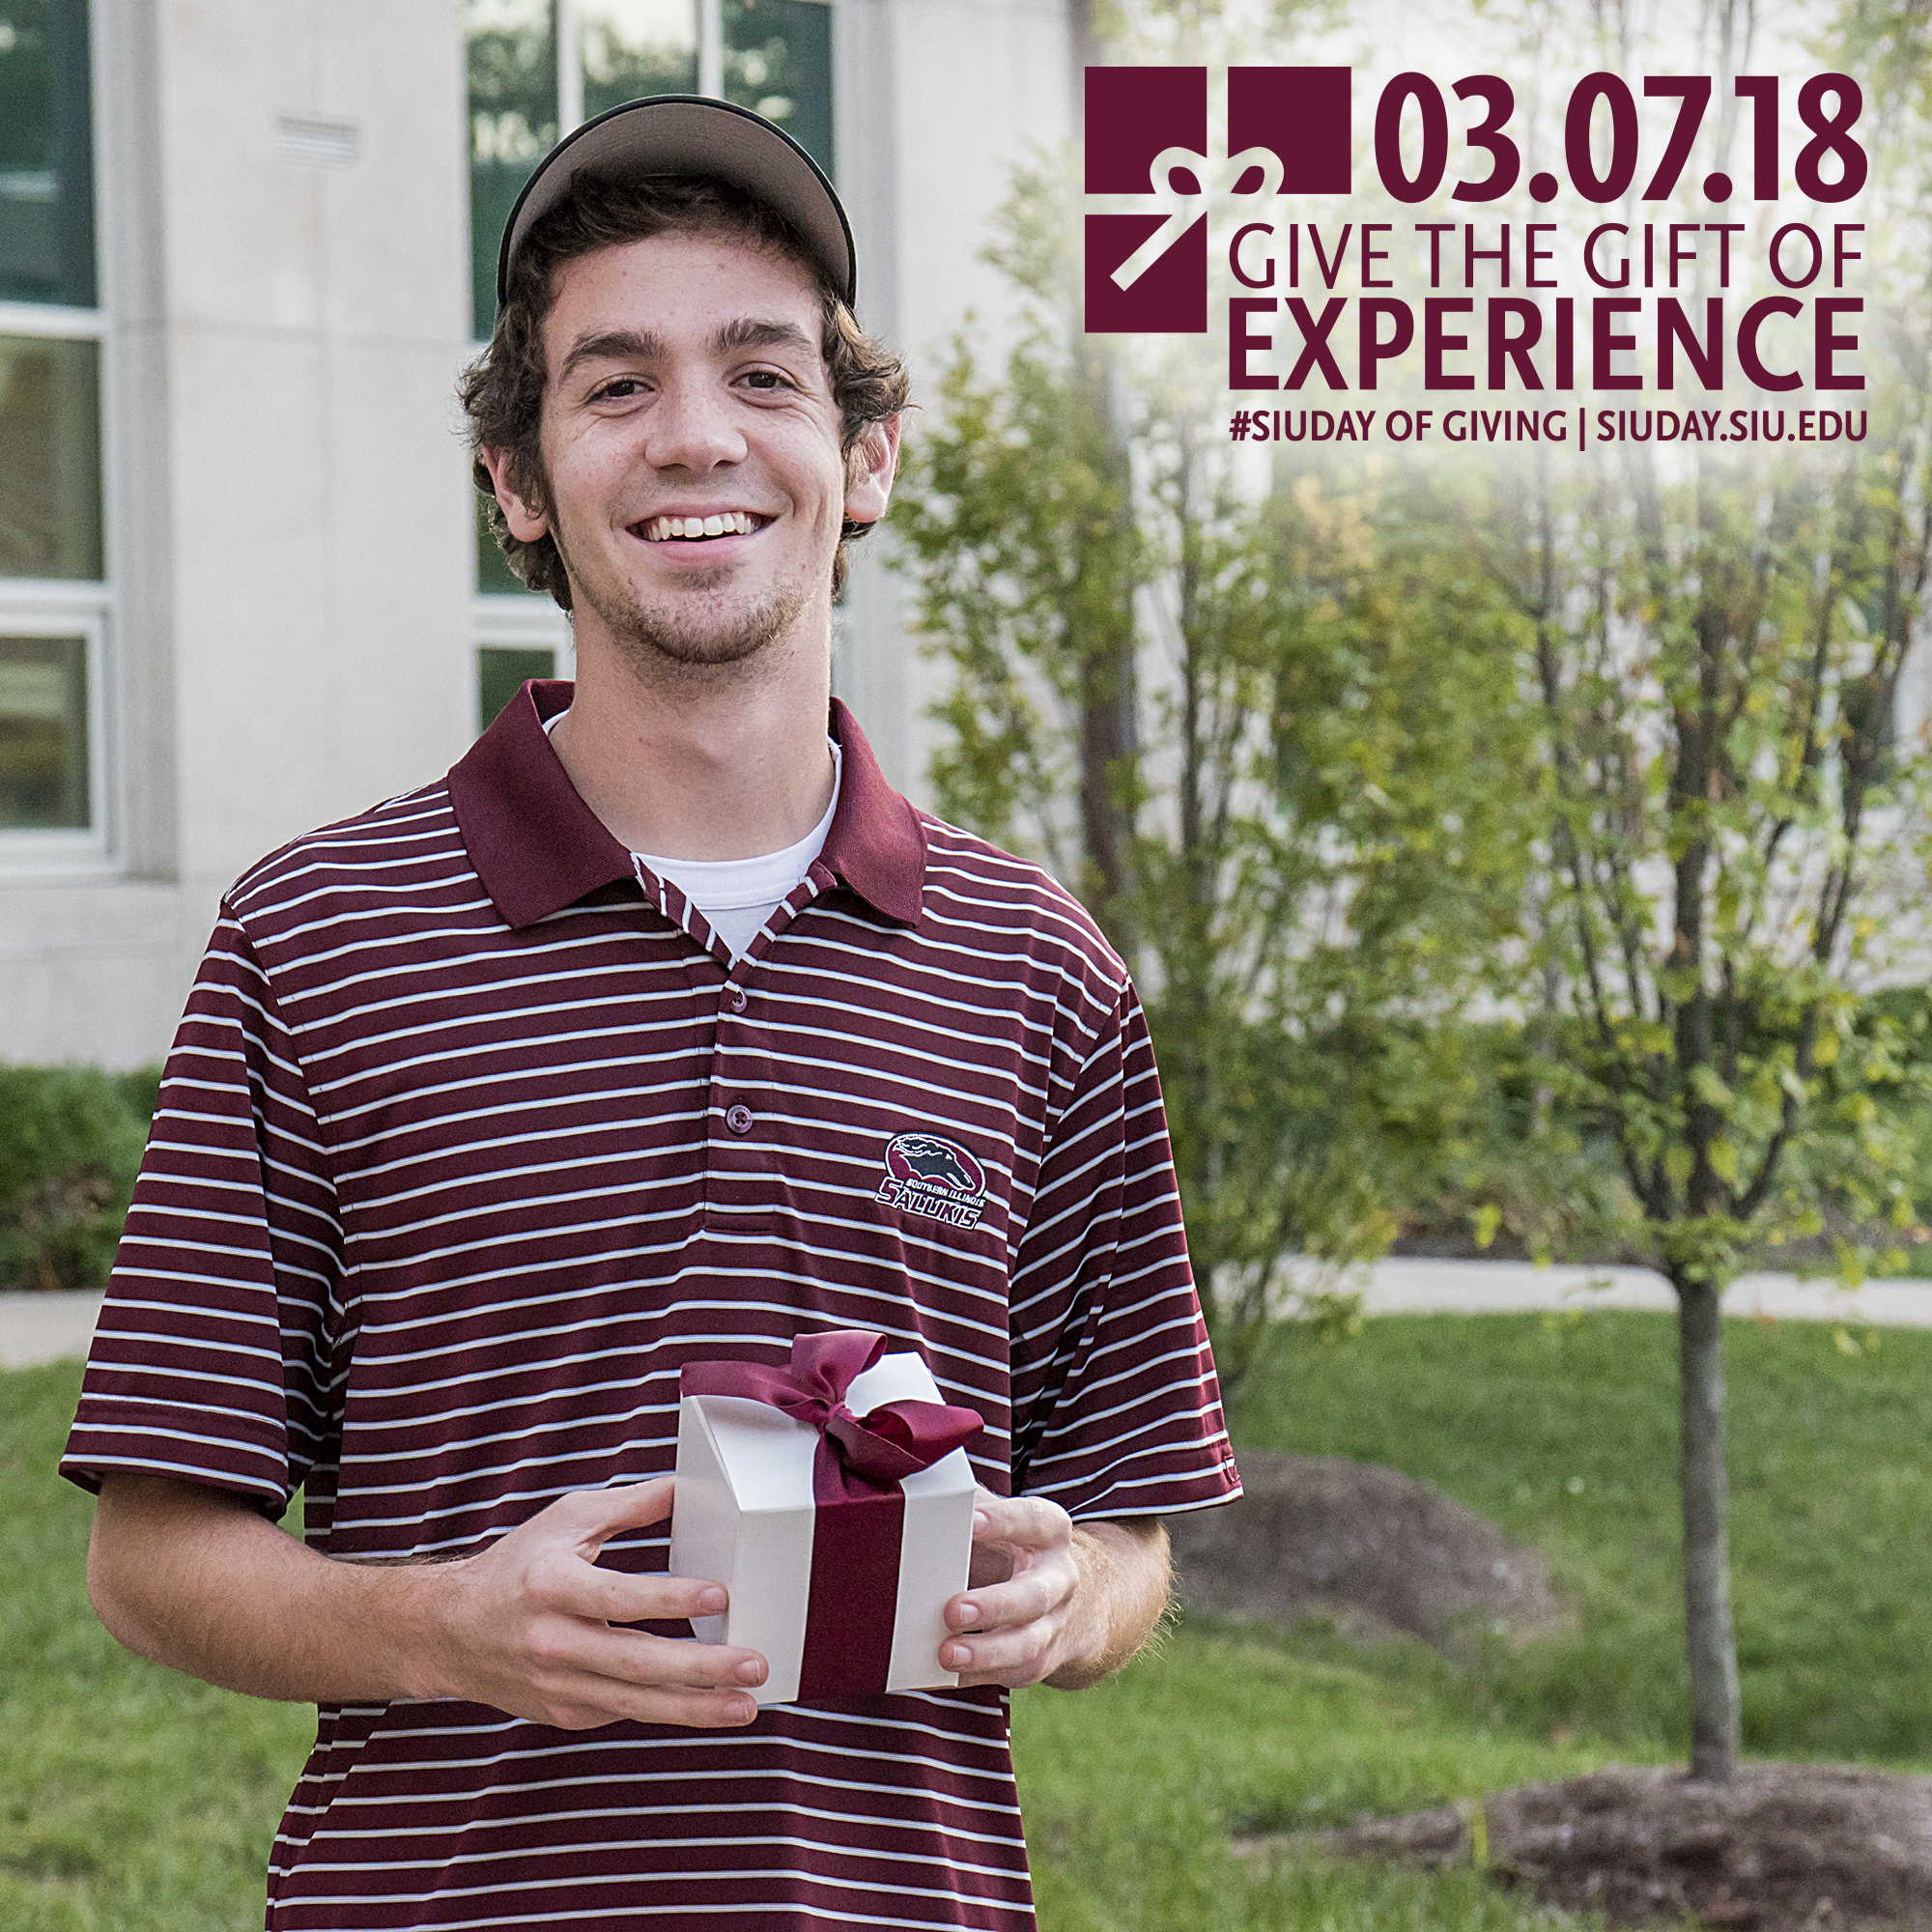 SIU Student William Locher, SIU Day of Giving 2018: Give the Gift of Experience